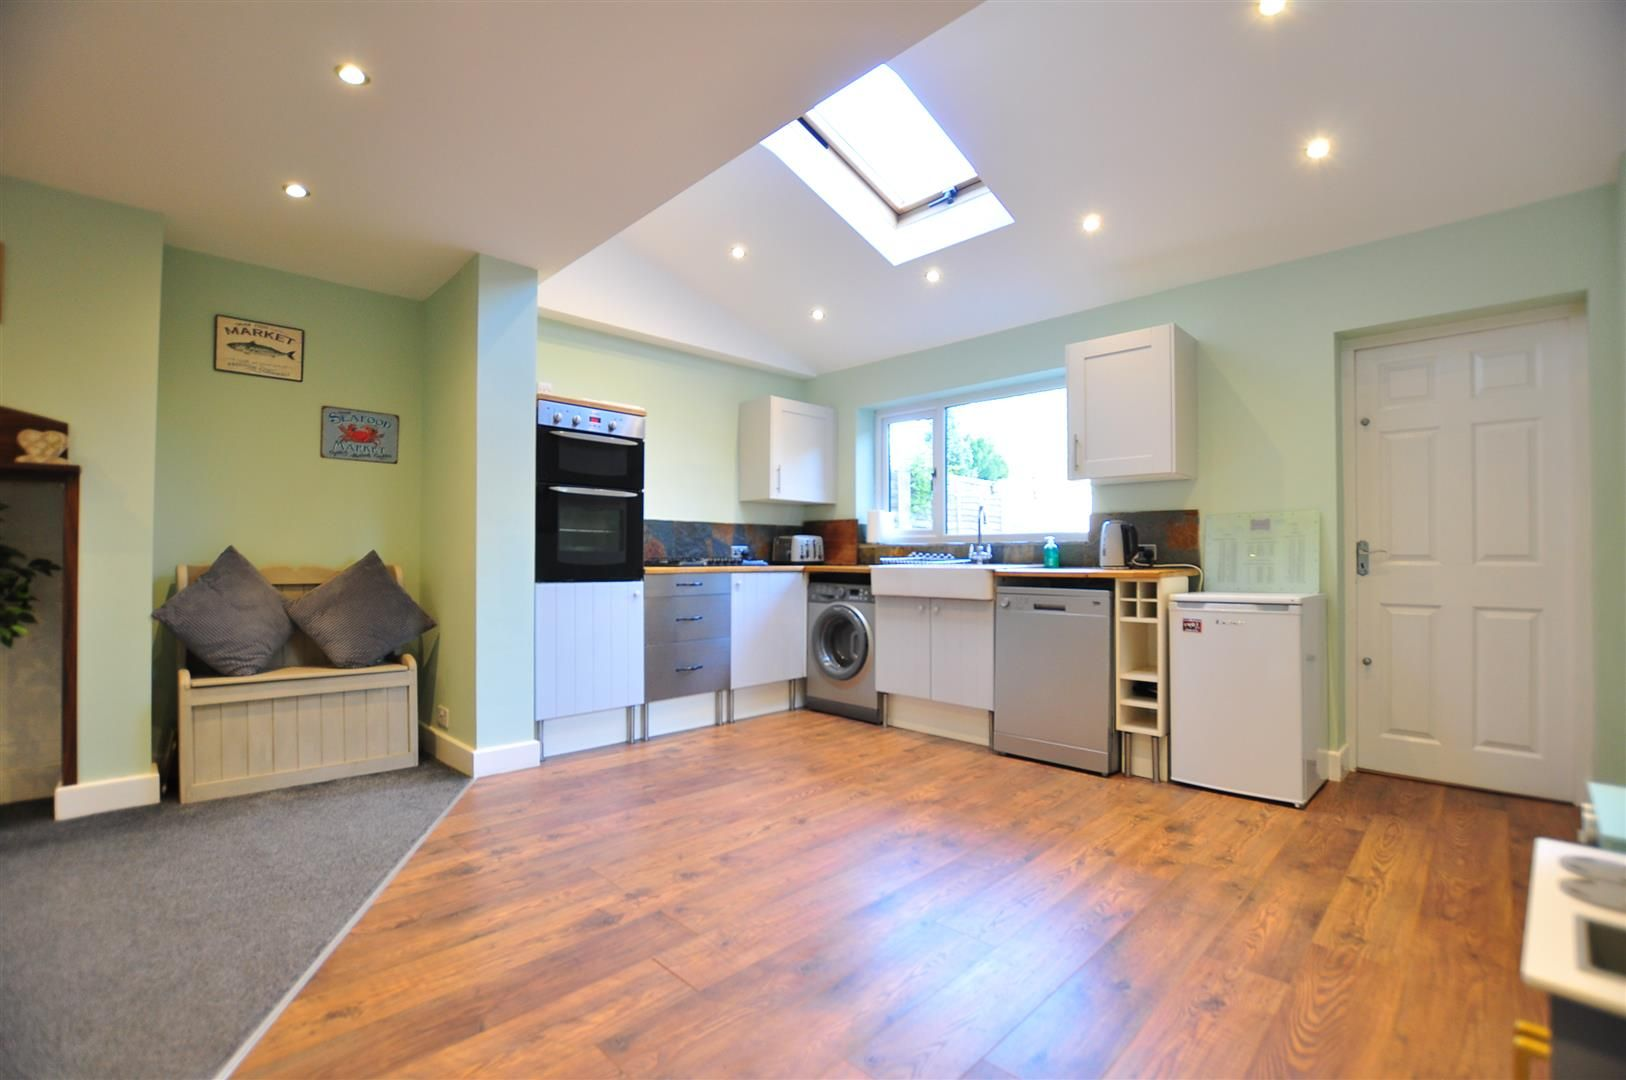 4 bed semi-detached for sale  - Property Image 2